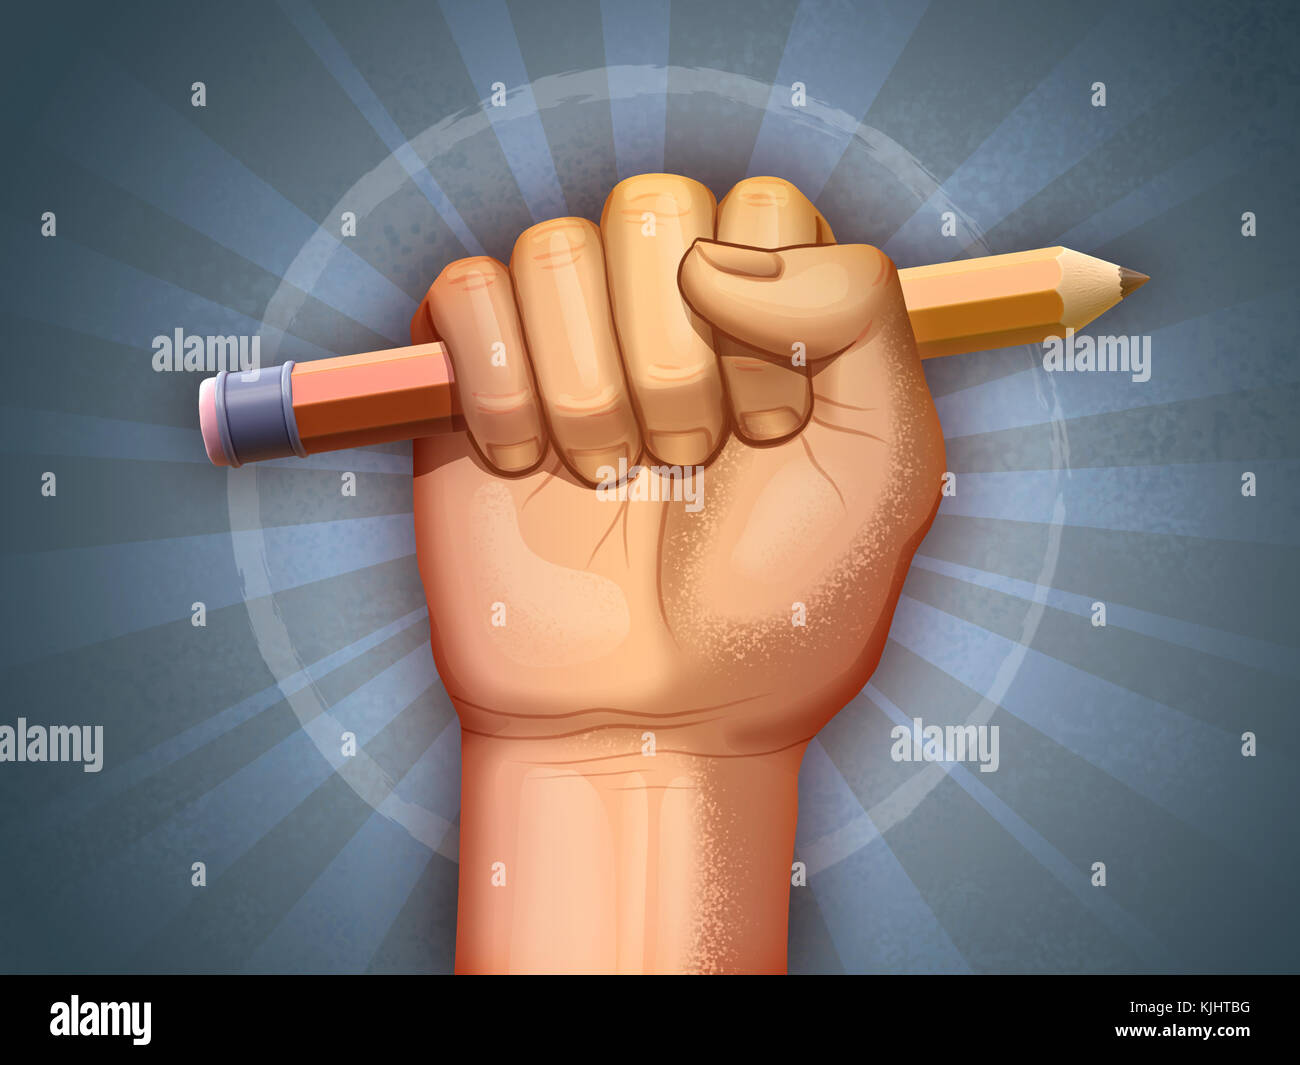 Fist holding a pencil as a symbol of freedom. Digital illustration. - Stock Image